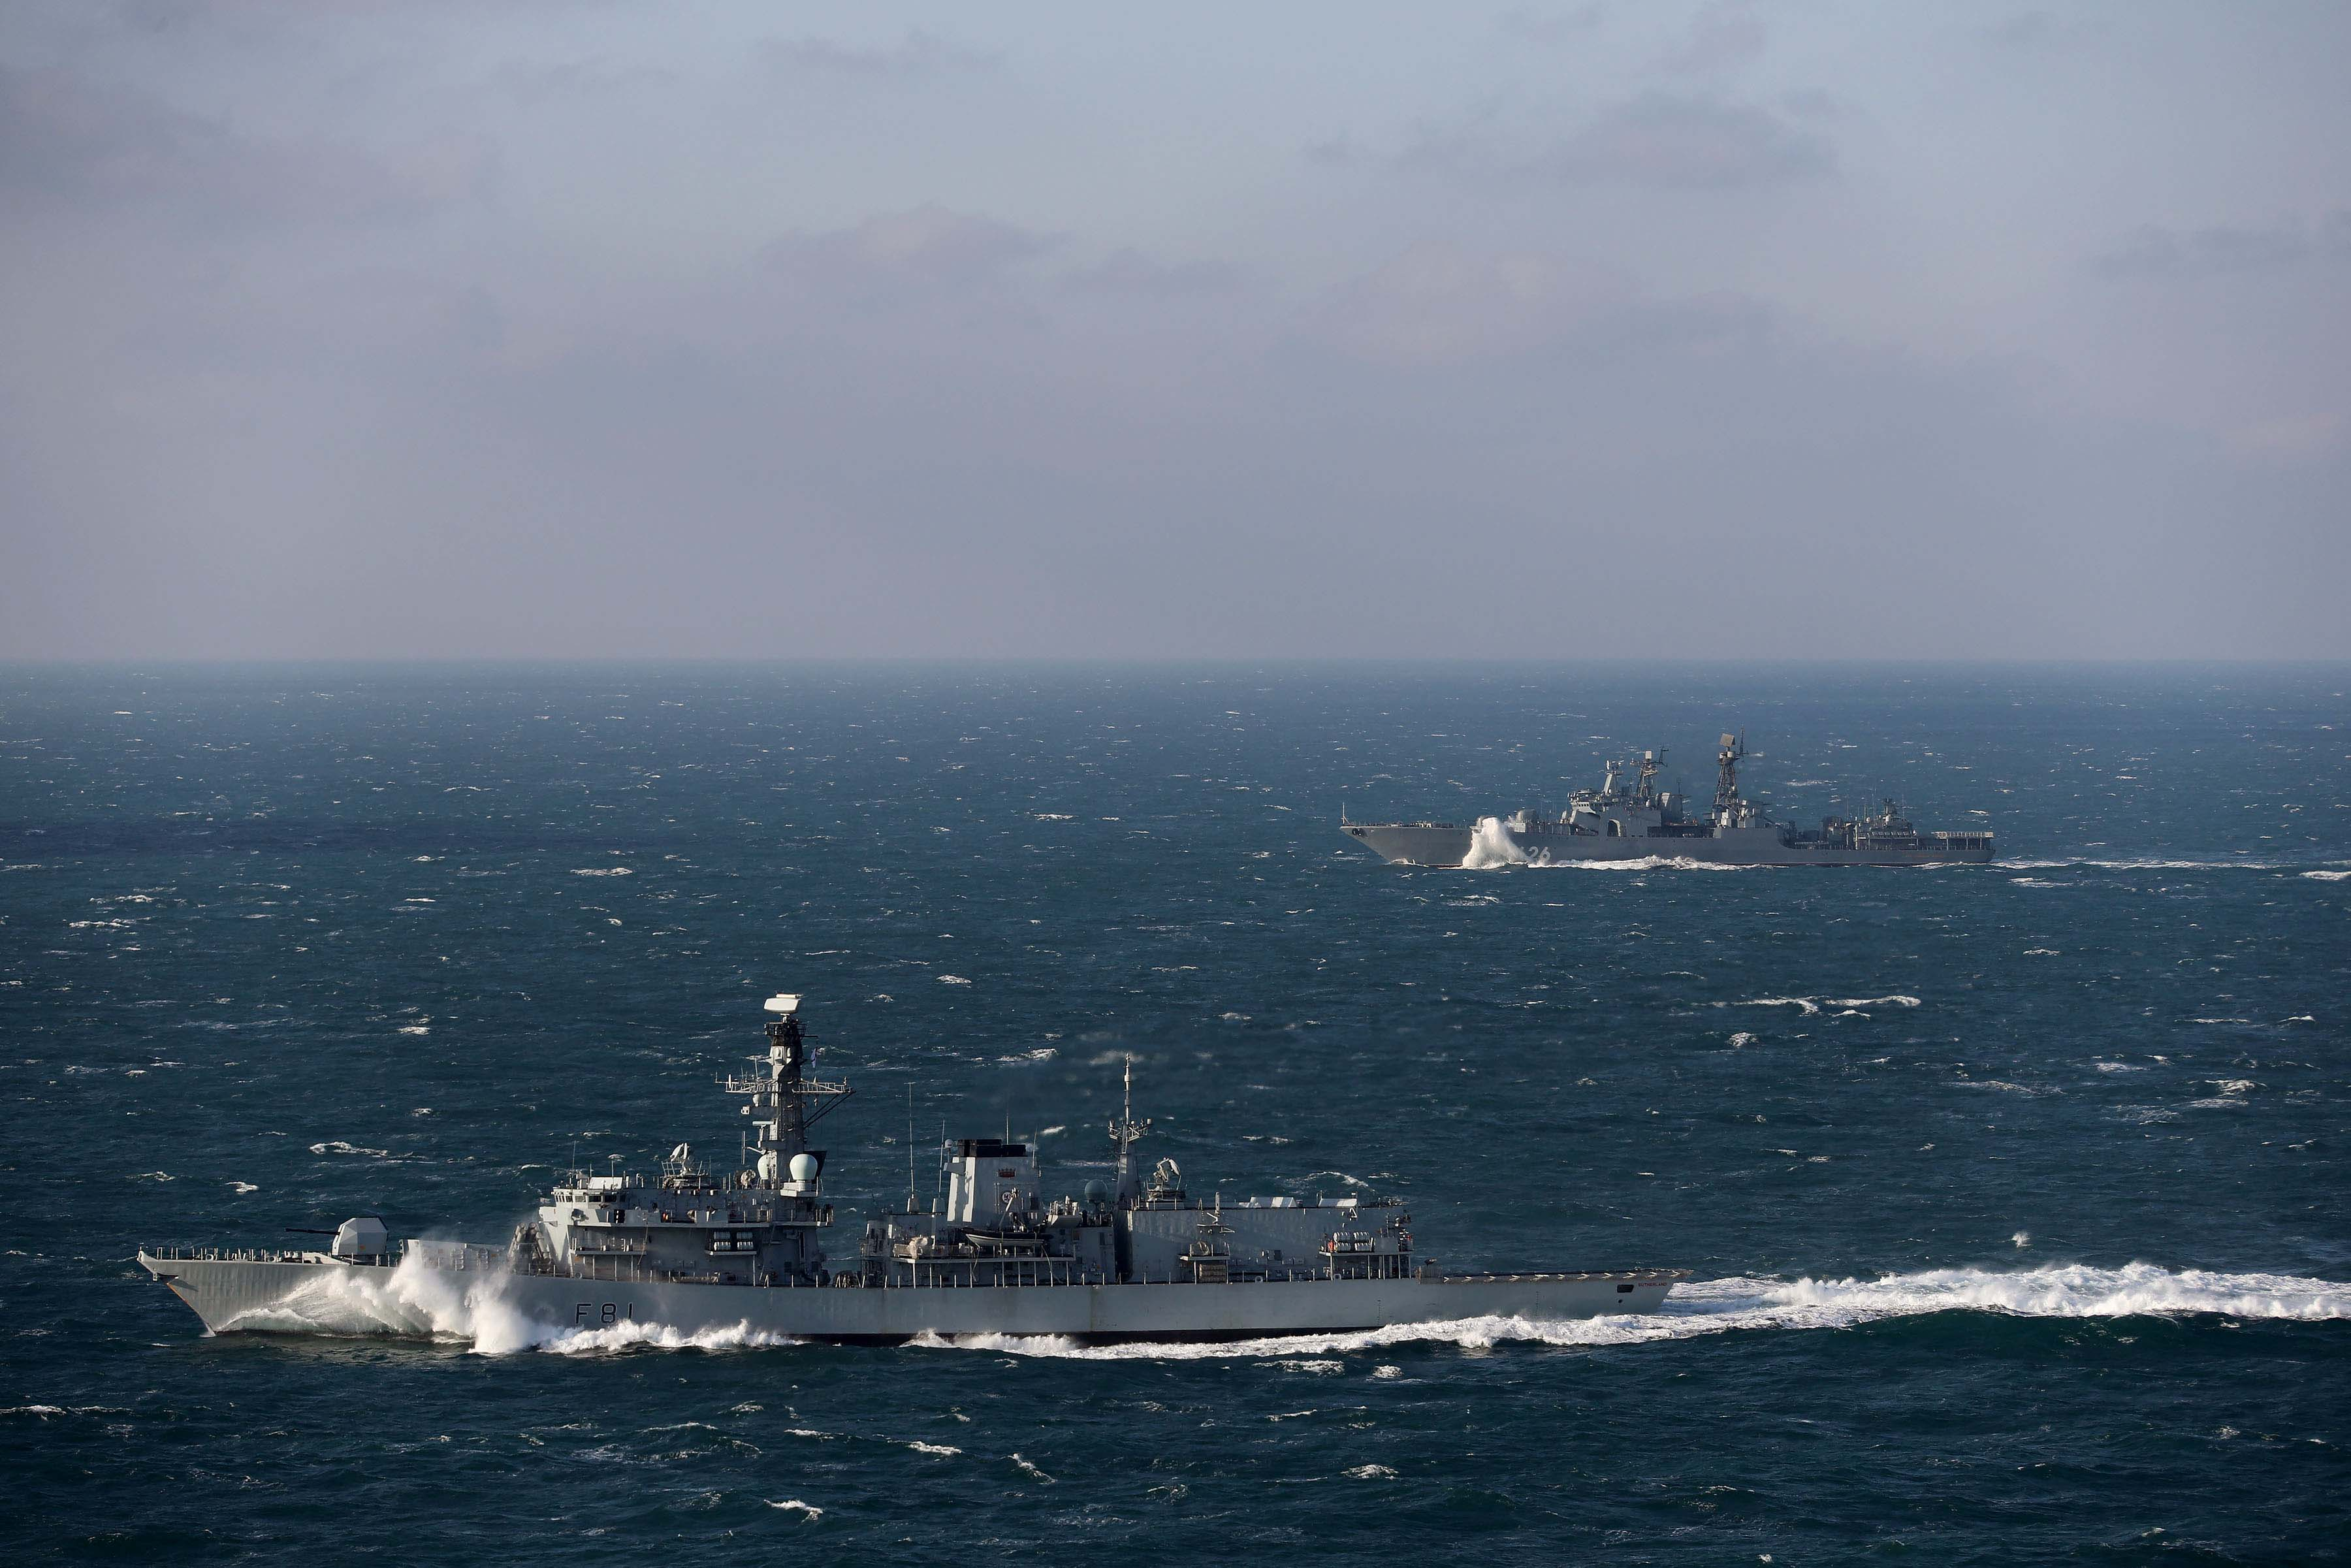 The Royal Navy's HMS Sutherland, a Devonport-based Type 23 frigate, is currently monitoring the Russian ship the Vice Admiral Kulakov, an Udaloy class destroyer, as she transits through UK territorial waters and those of other NATO member states.